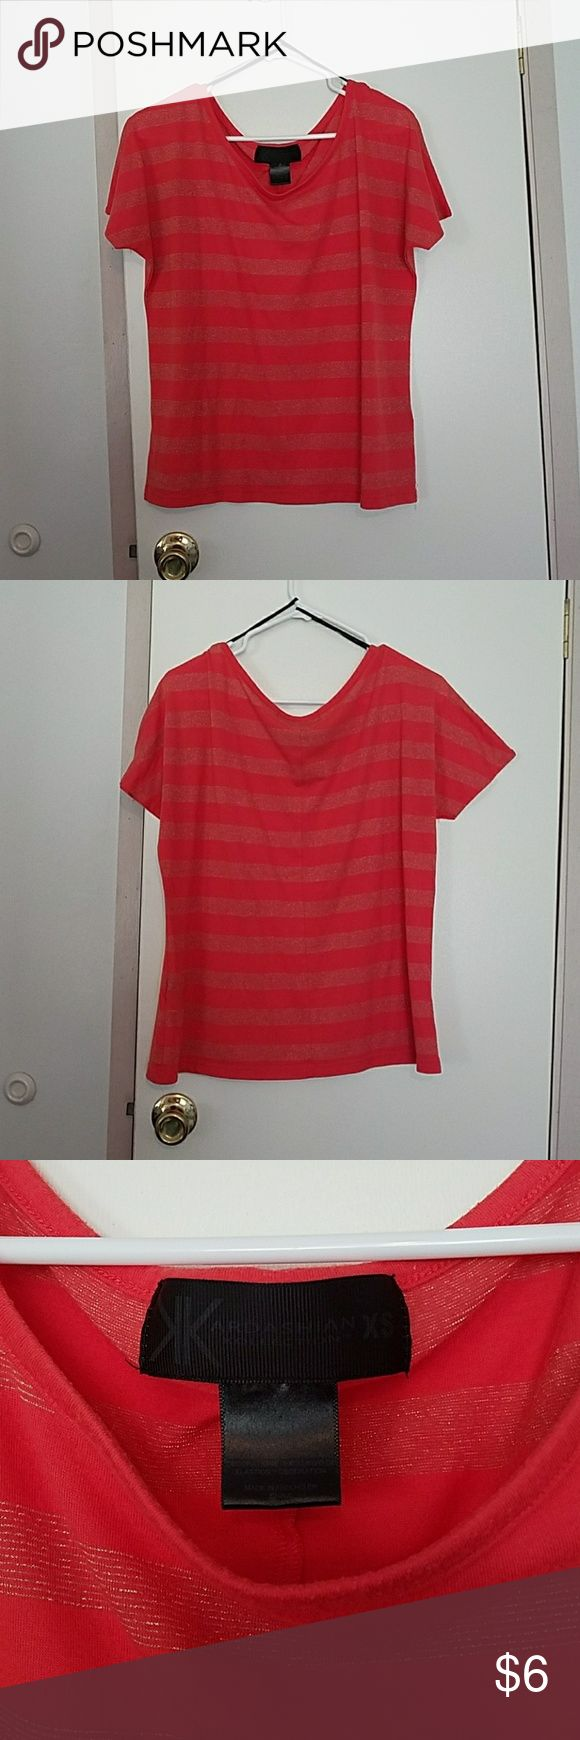 Women's Top/Kardashian Kollection Kardashian Kollection top Size: XS Made with 63% polyester 33% rayon 4% metallic  Colors% Coral/Gold Mild pilling throughout garment but still in good used condition. Price is reflected.. Kardashian Kollection Tops Blouses